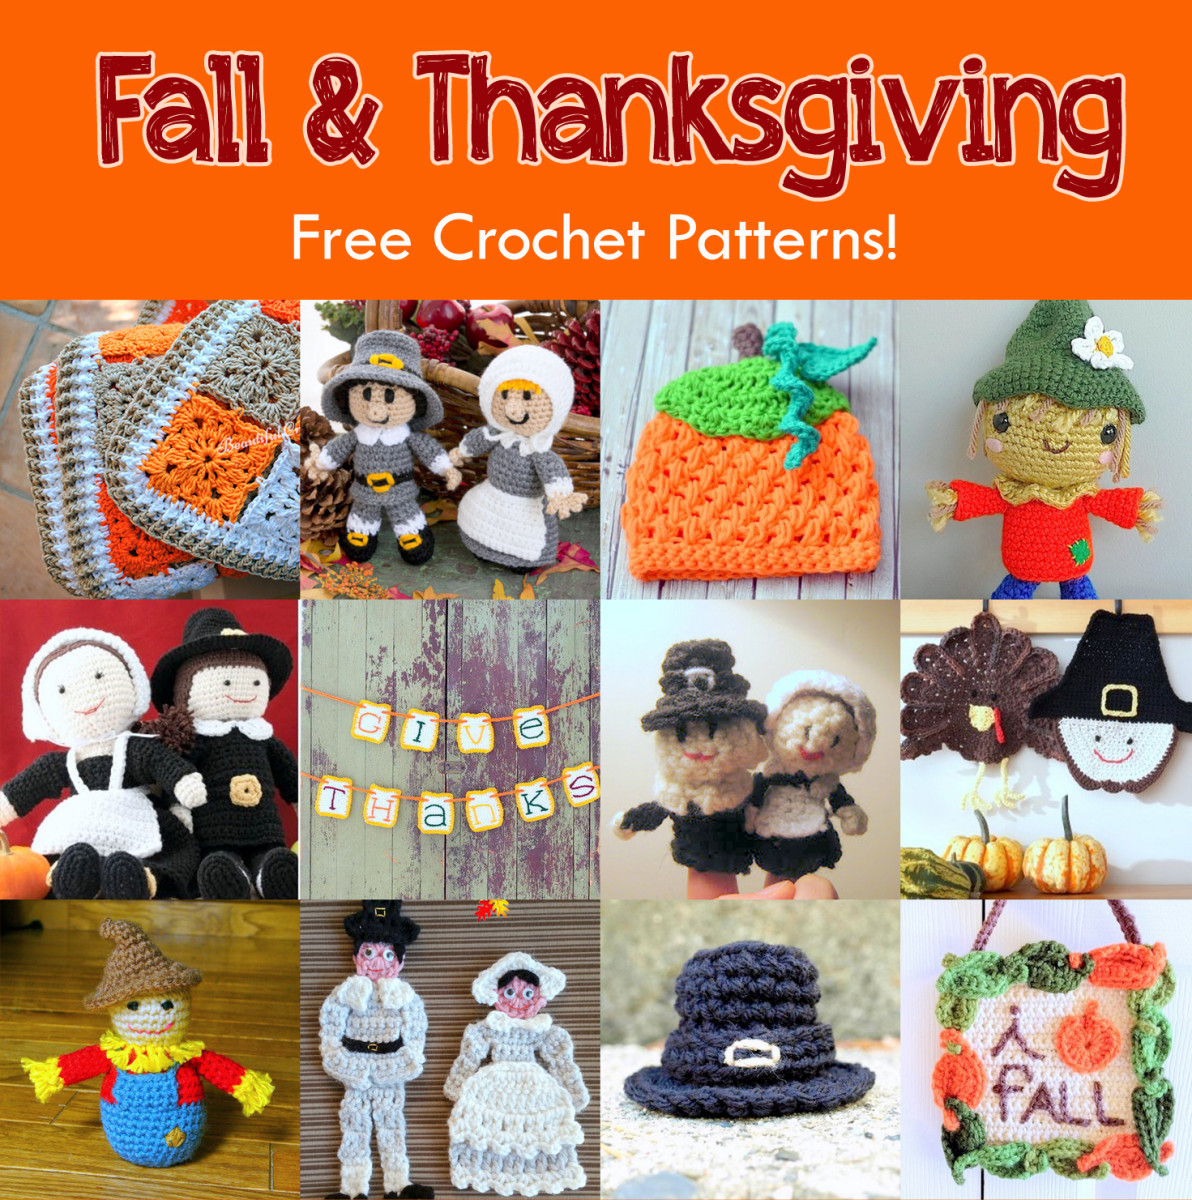 12 Free Fall & Thanksgiving Crochet Patterns   HubPages